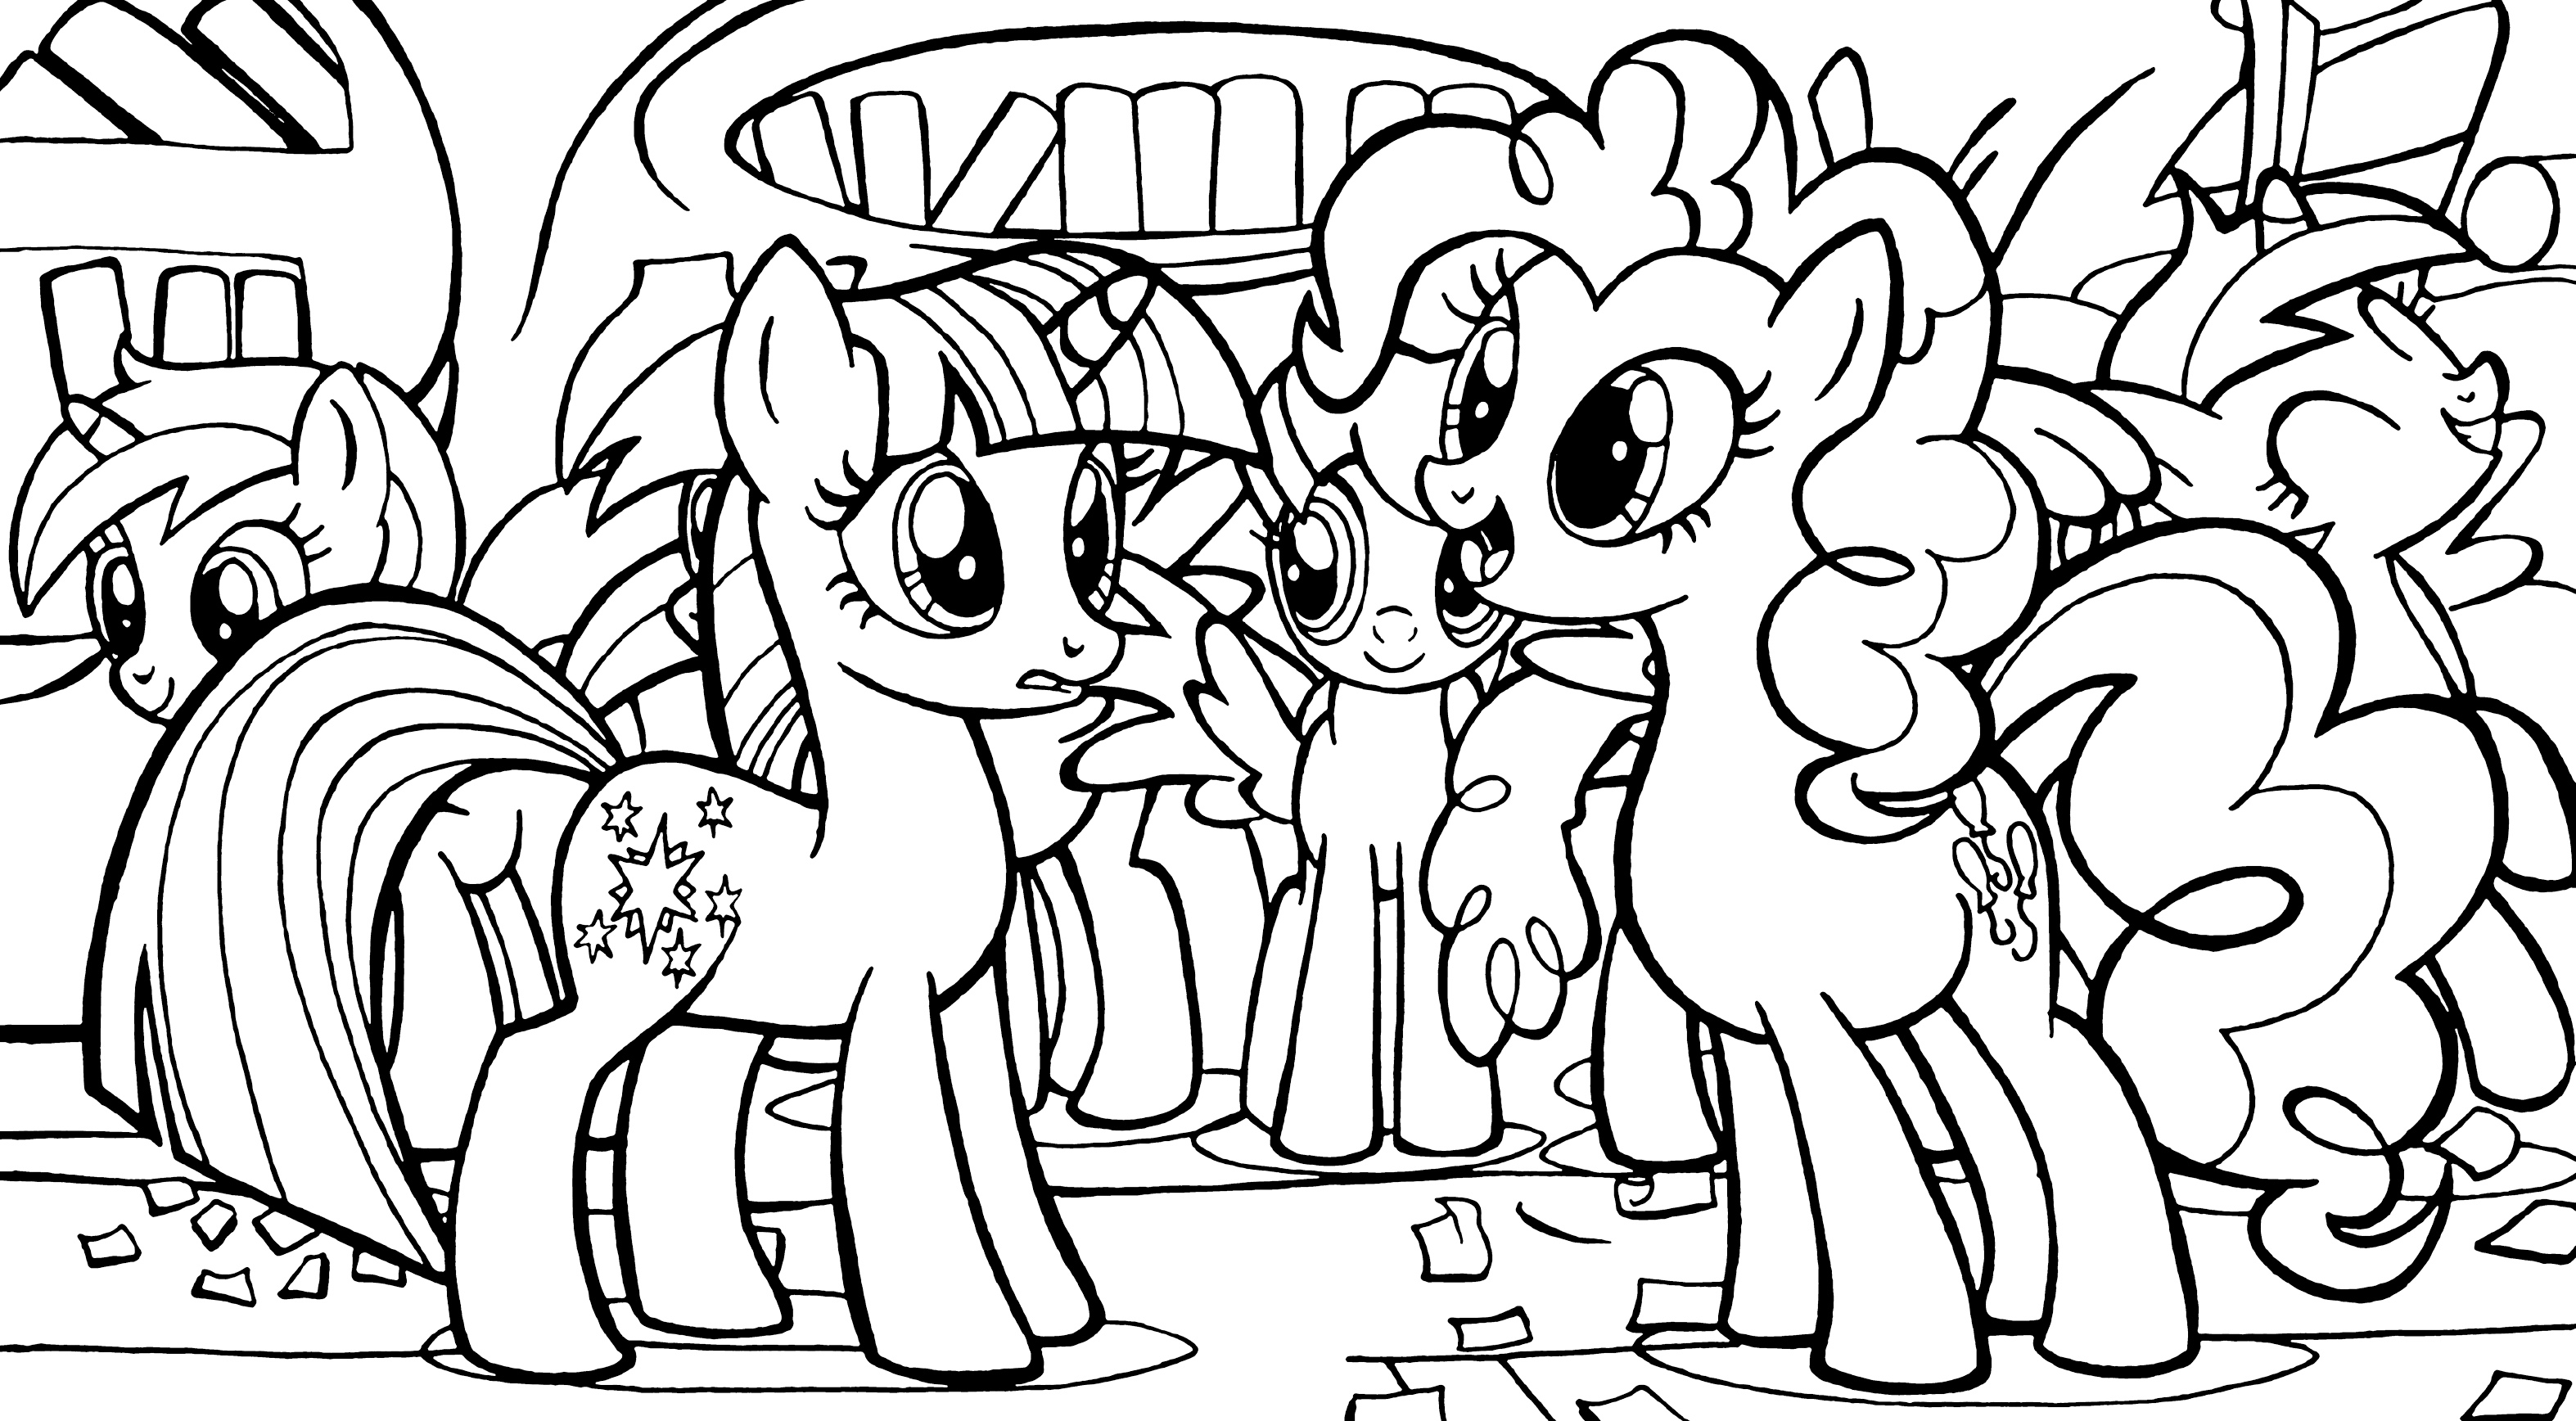 Kleurplaat Fluttershy Equestria Pinkie Pie Pony Coloring Pages For Girls To Print For Free